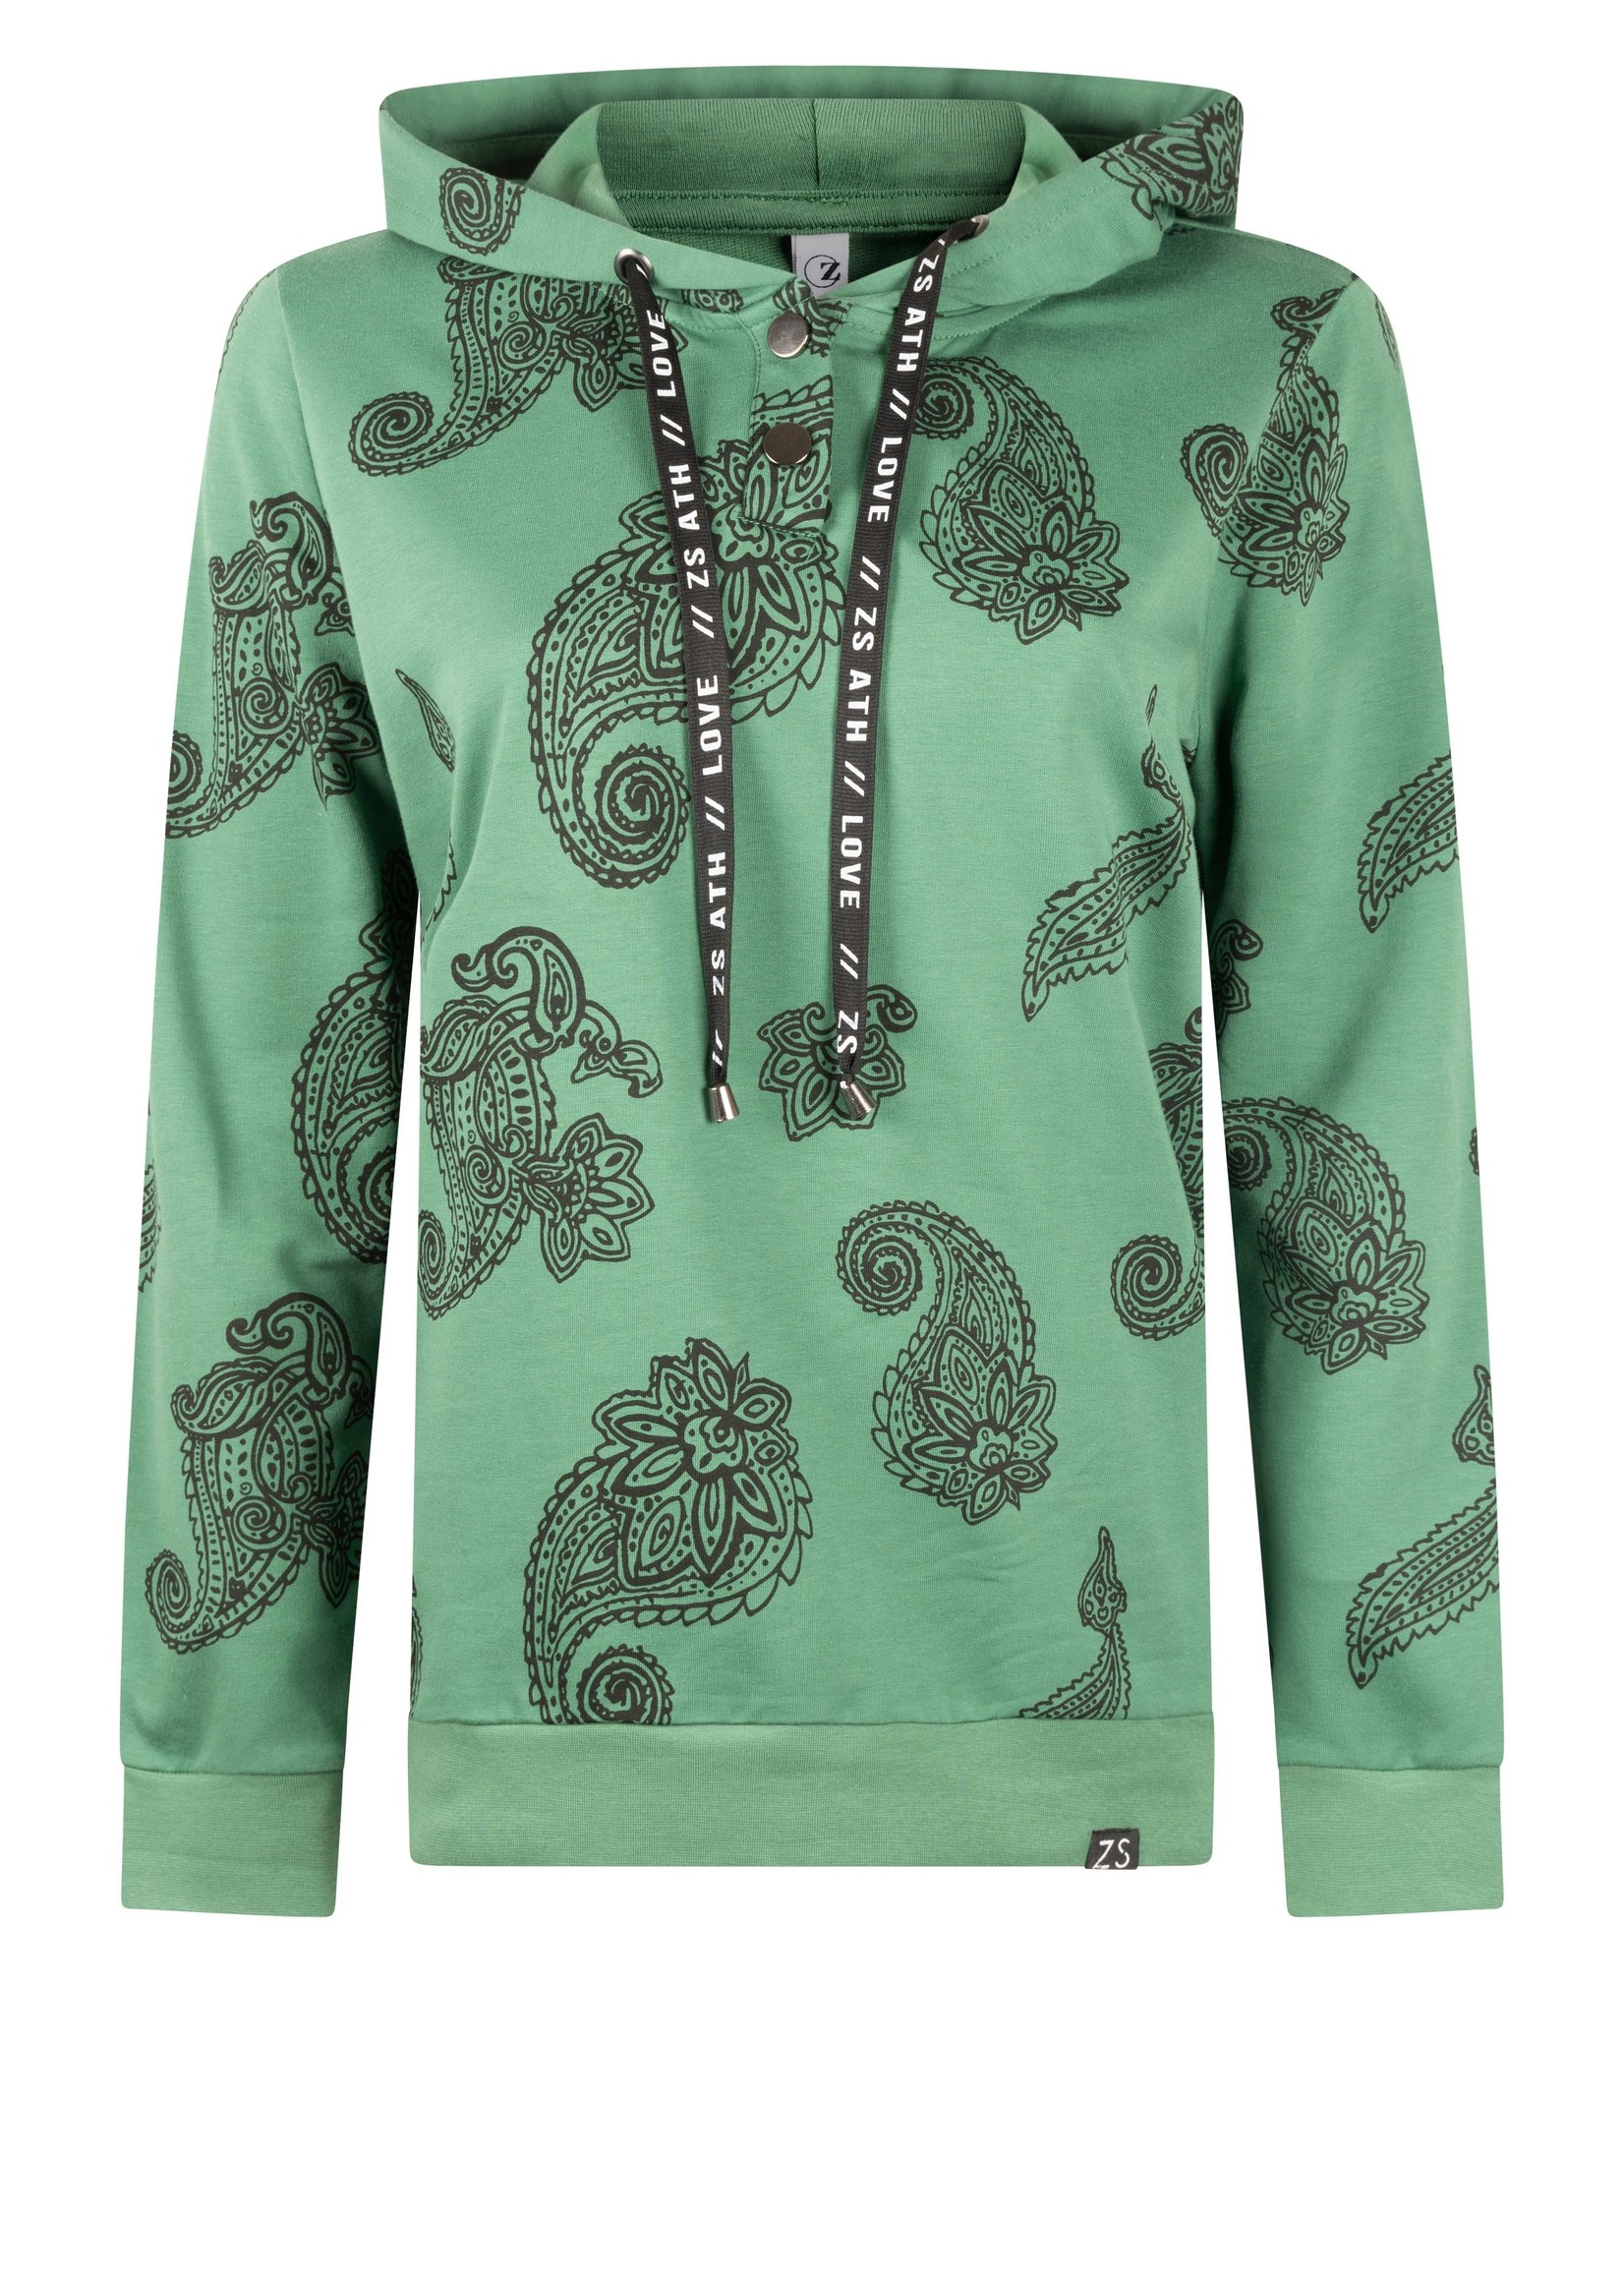 Zoso Nice Hooded sweater with print